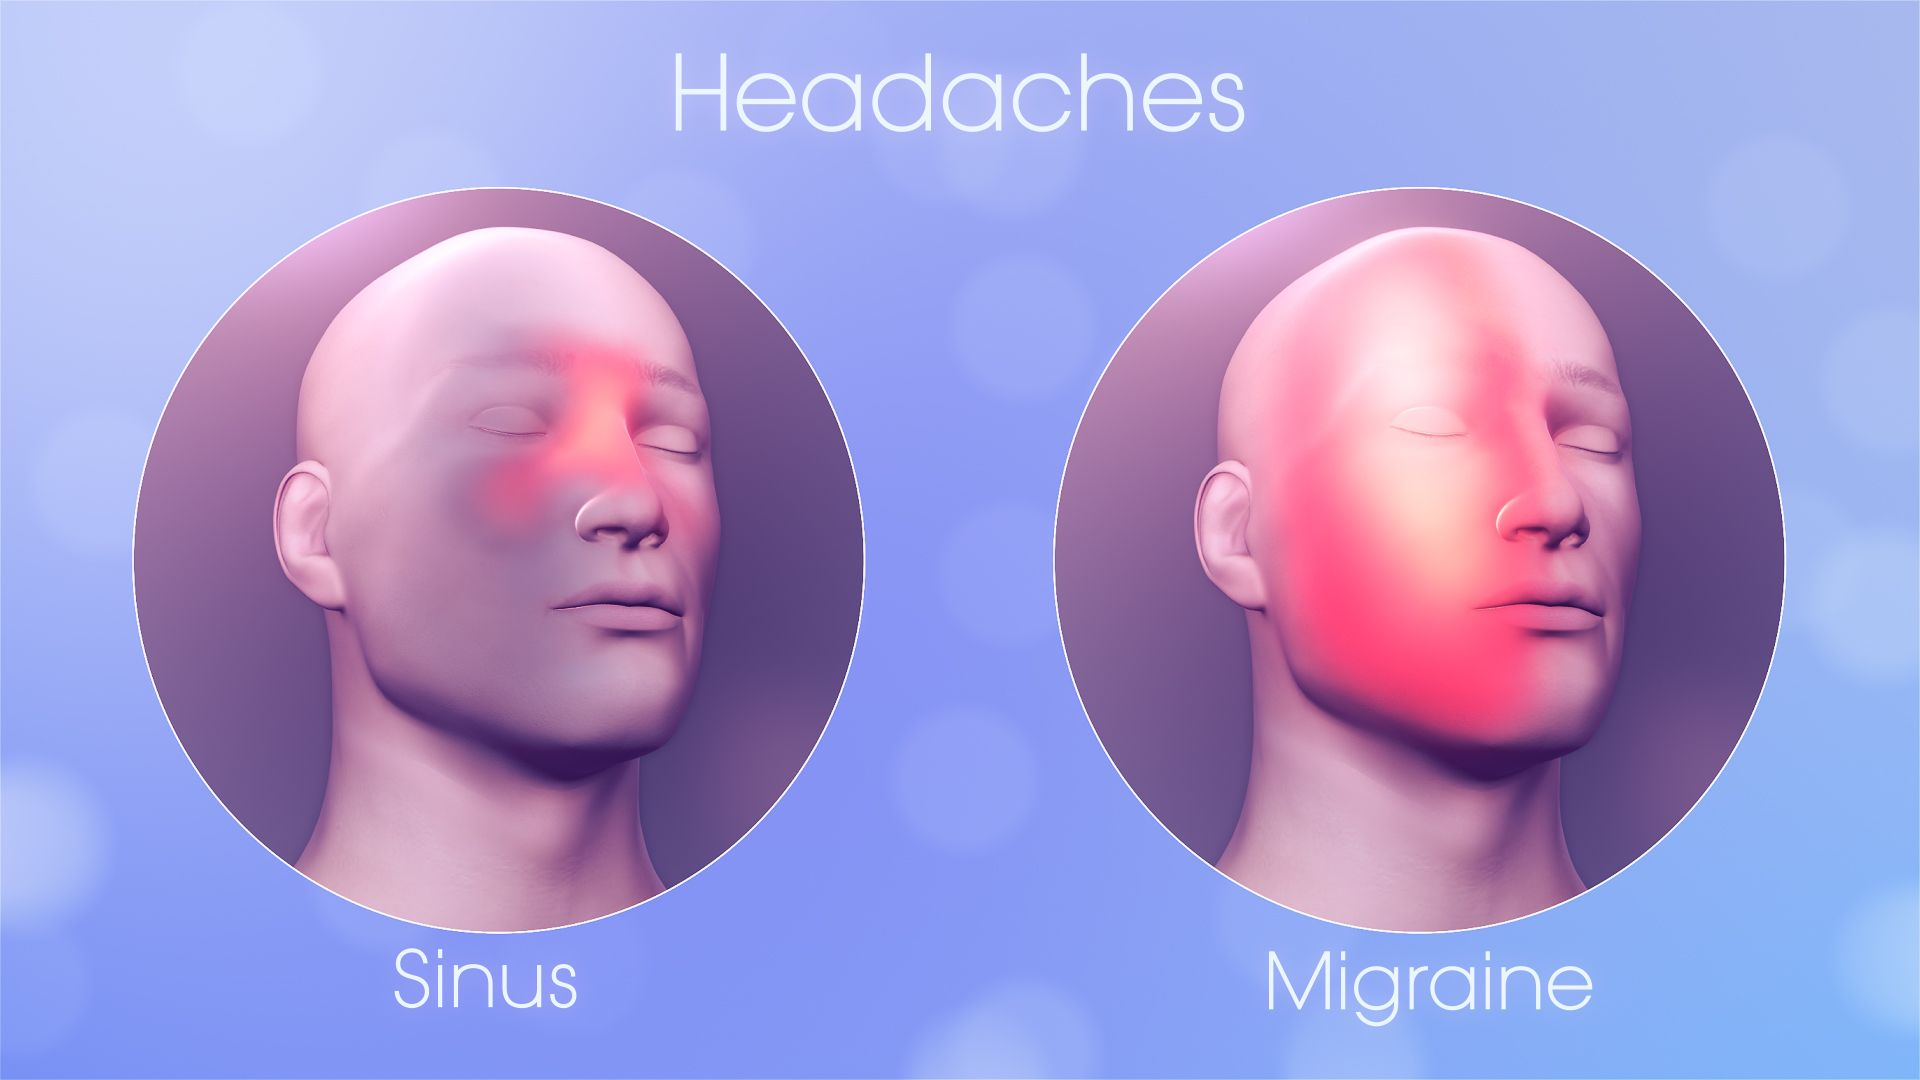 35024e42e4512b4f70791e09f4208d7b - How To Get Rid Of Sinus Pressure Behind Your Eyes